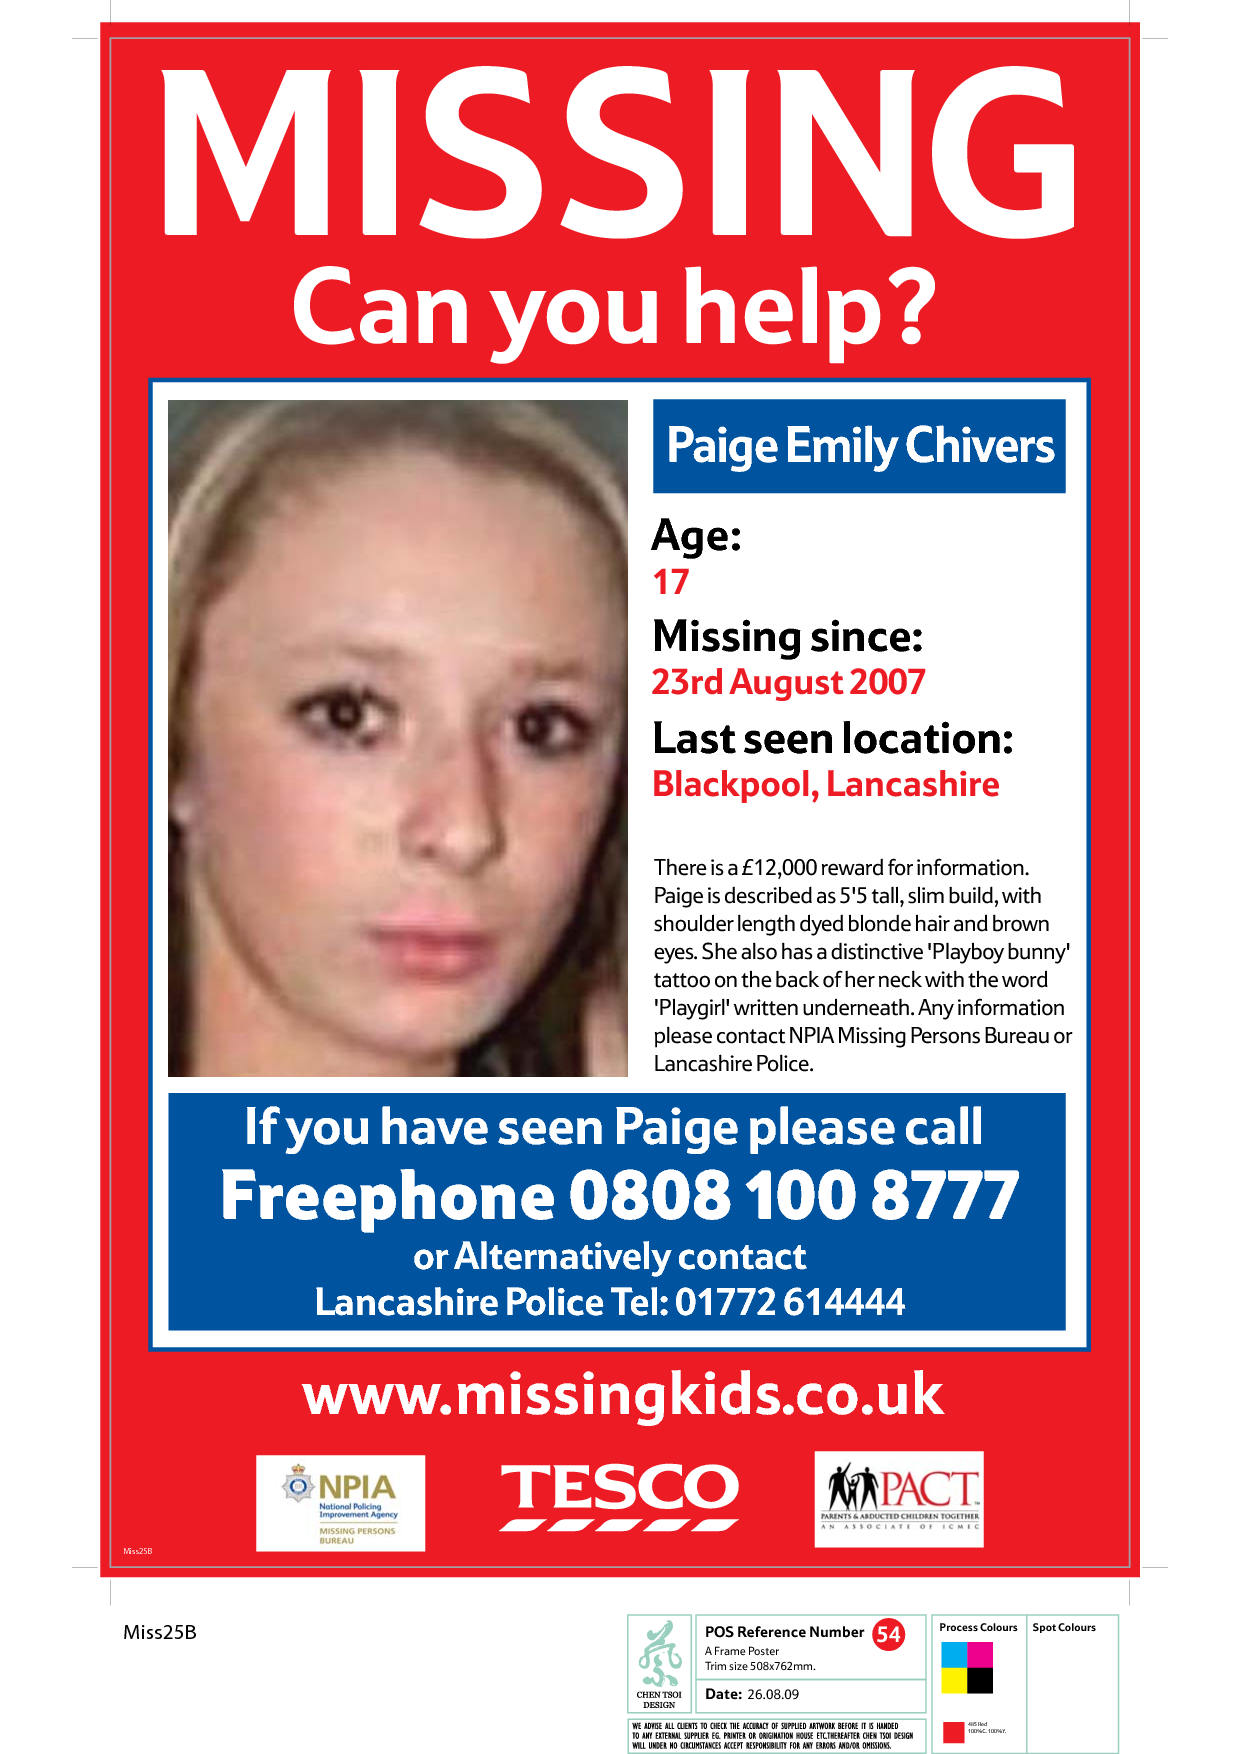 Marvelous Missing People | Miss25B New Missing Person Poster August.ai For Missing People Posters